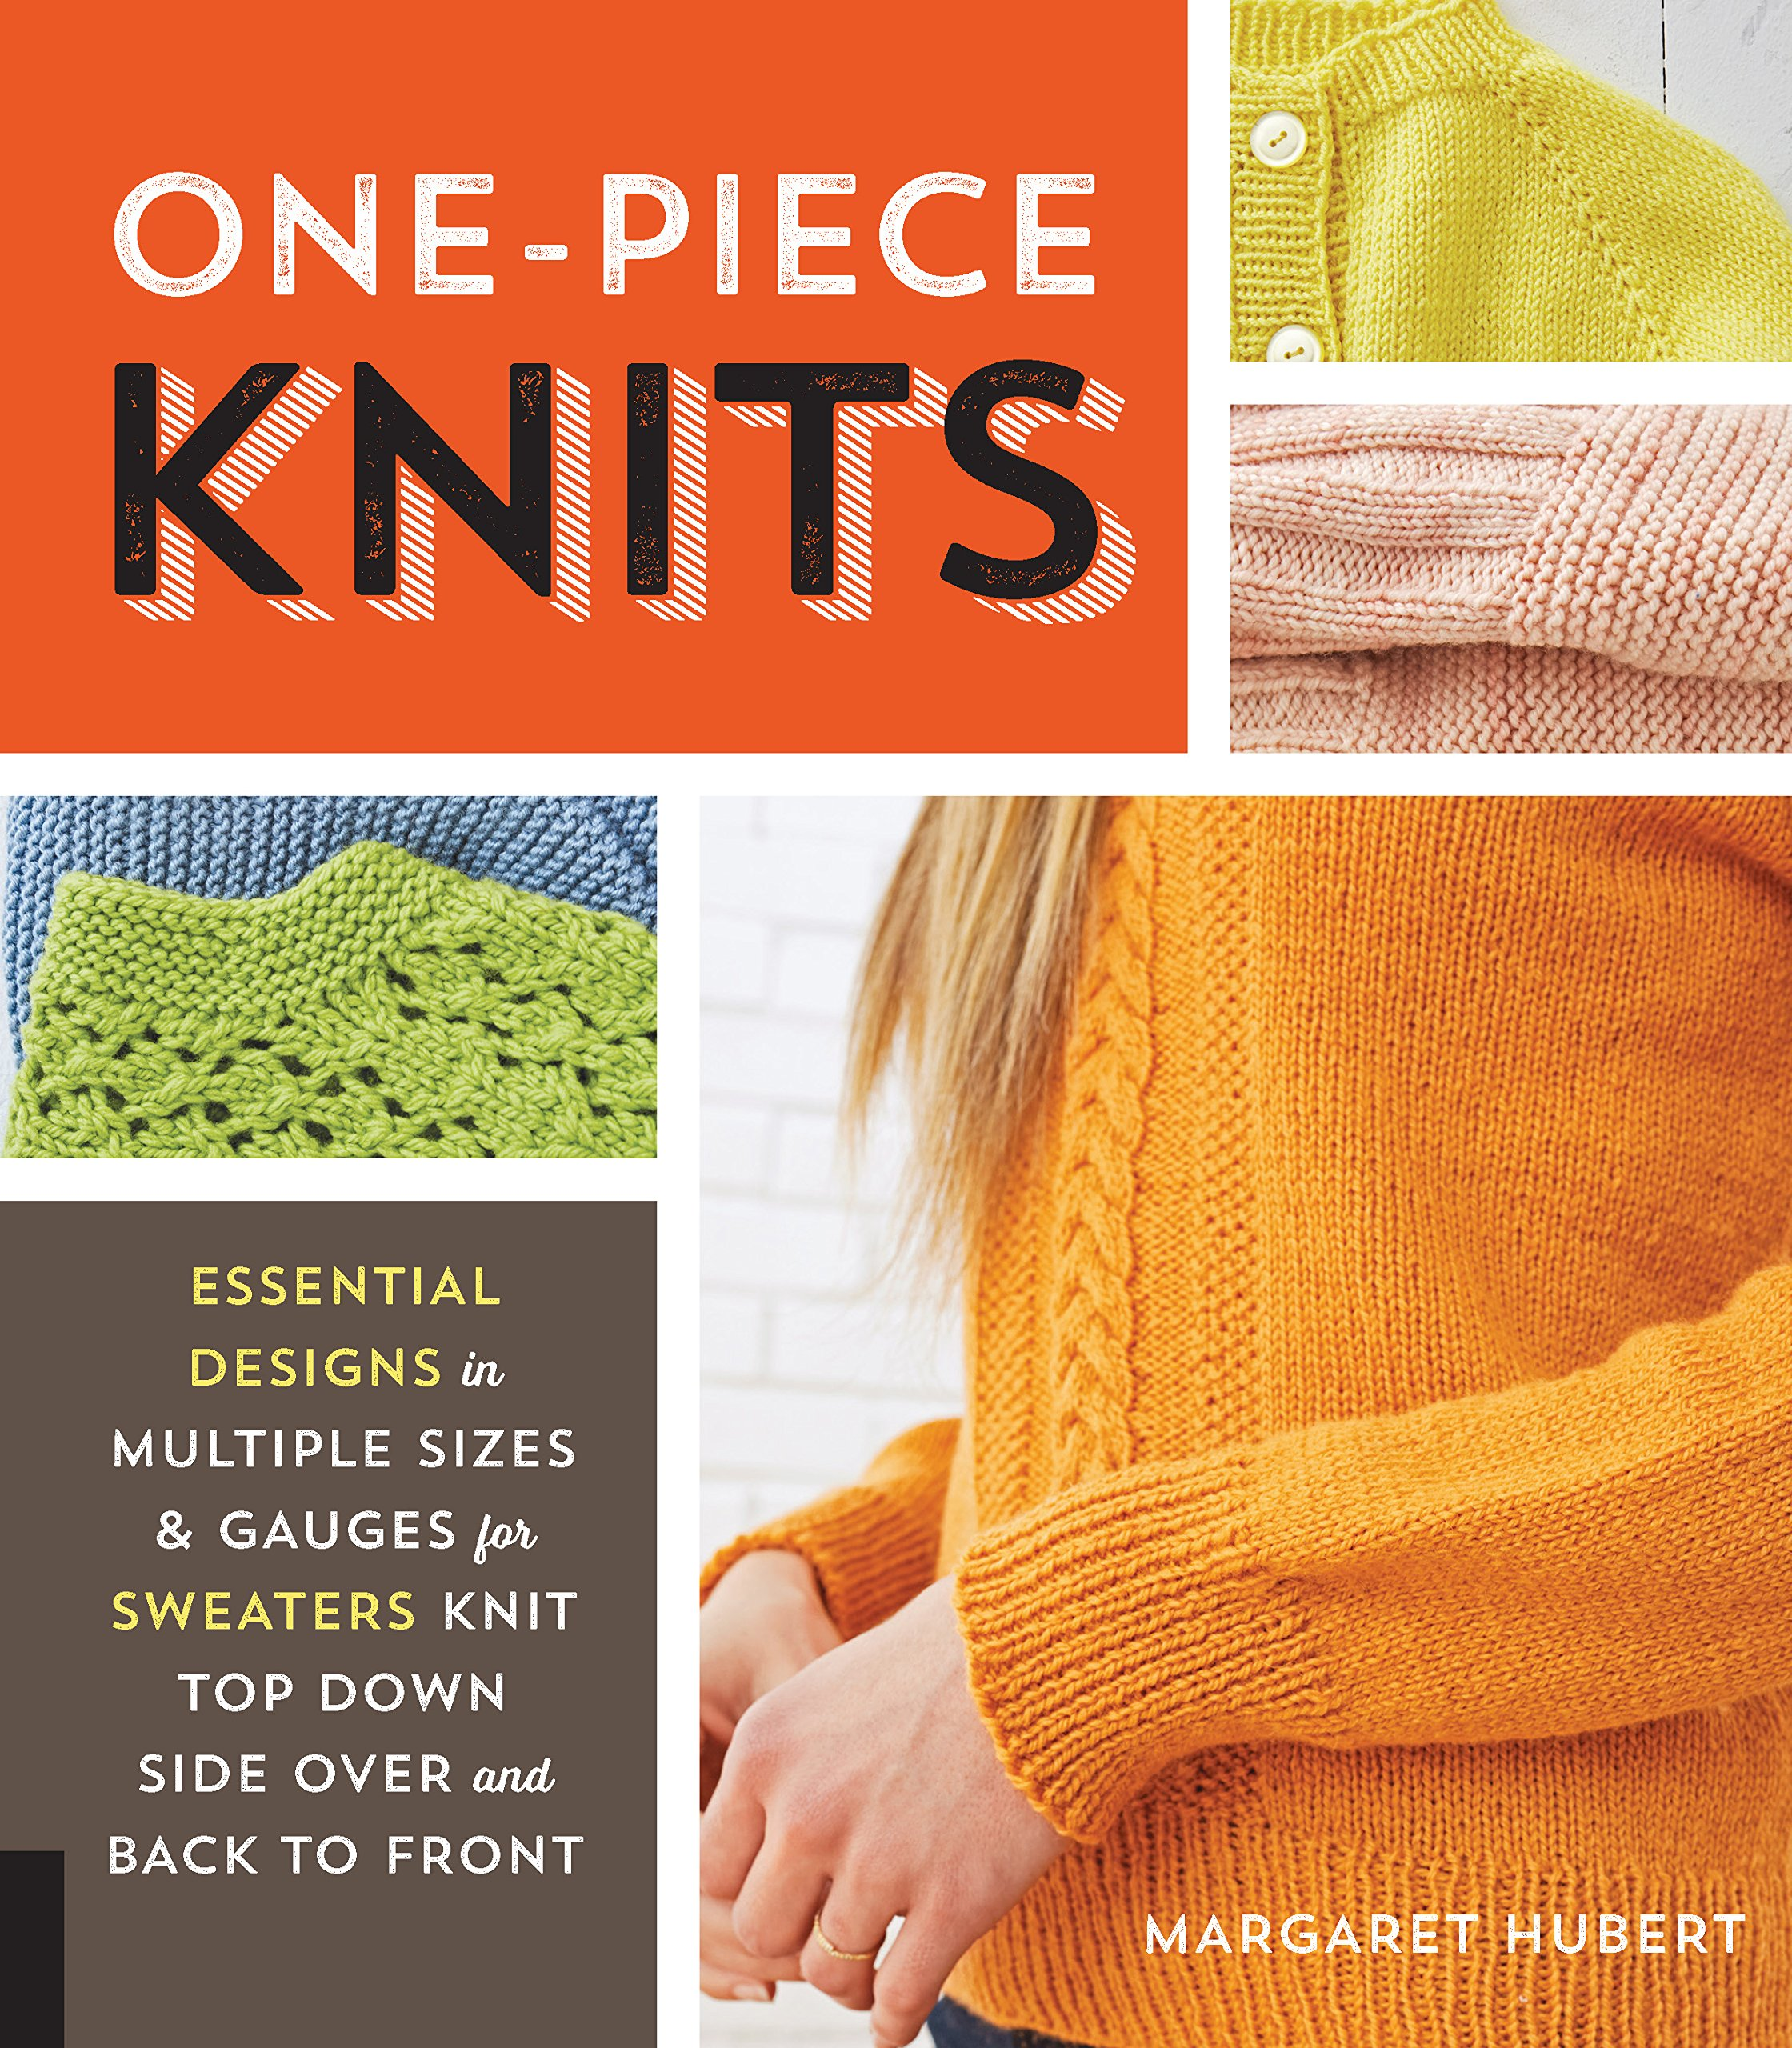 One-Piece Knits: Essential Designs in Multiple Sizes and